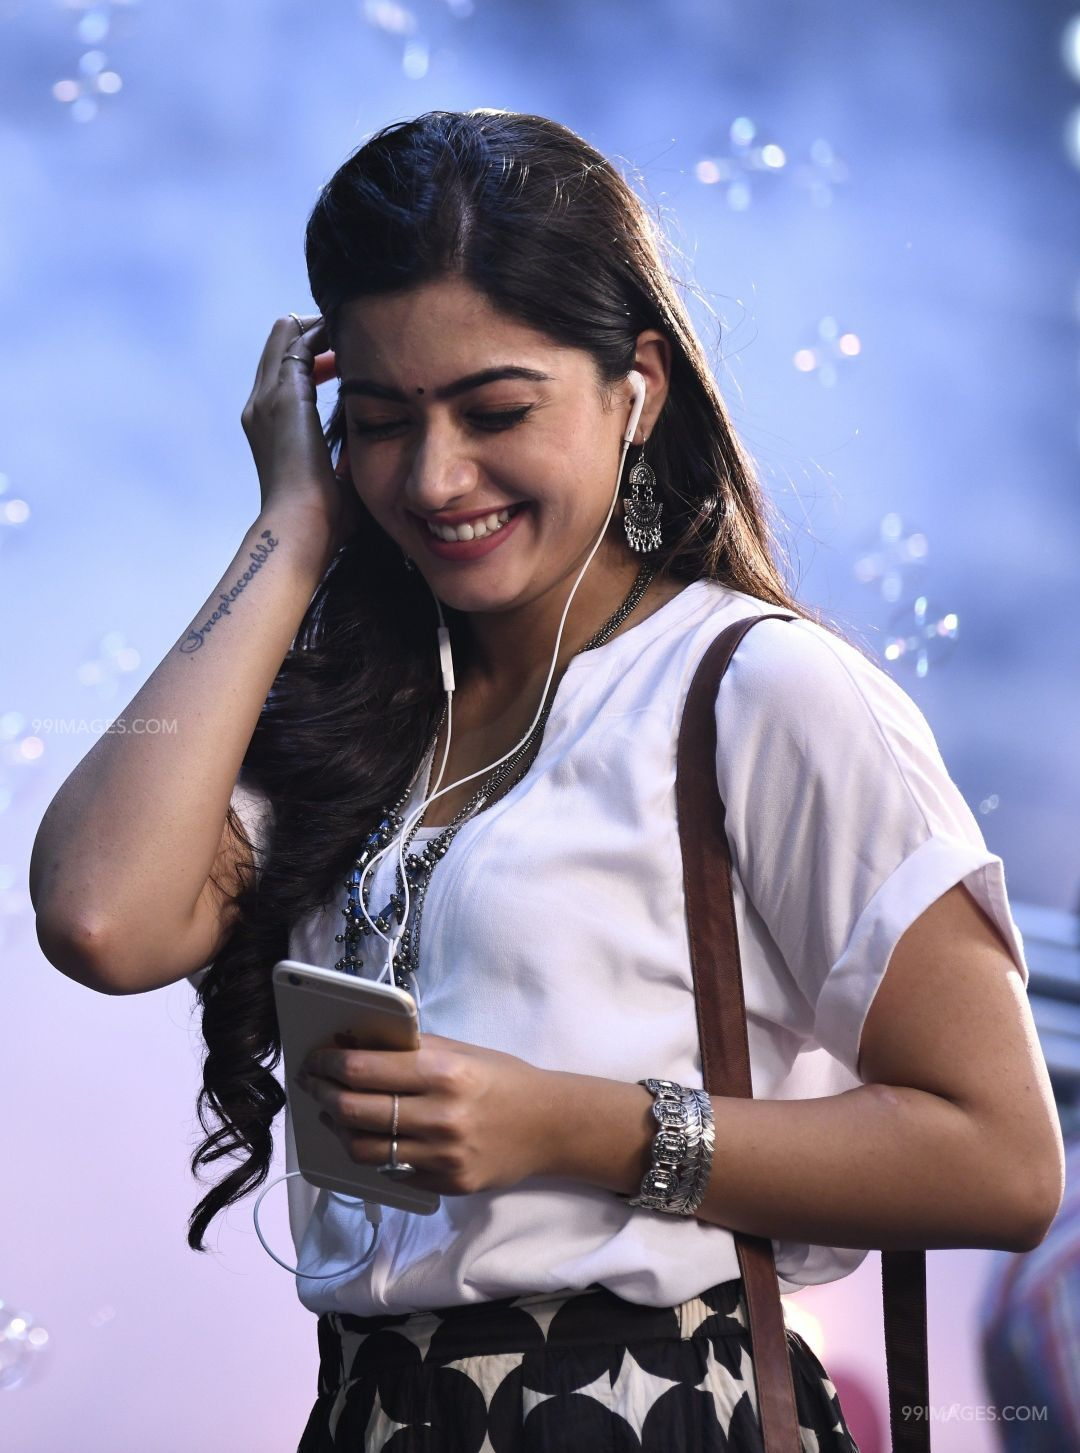 Rashmika Mandanna Beautiful HD Photos & Mobile Wallpapers HD (Android/iPhone) (1080p) (44290) - Rashmika Mandanna